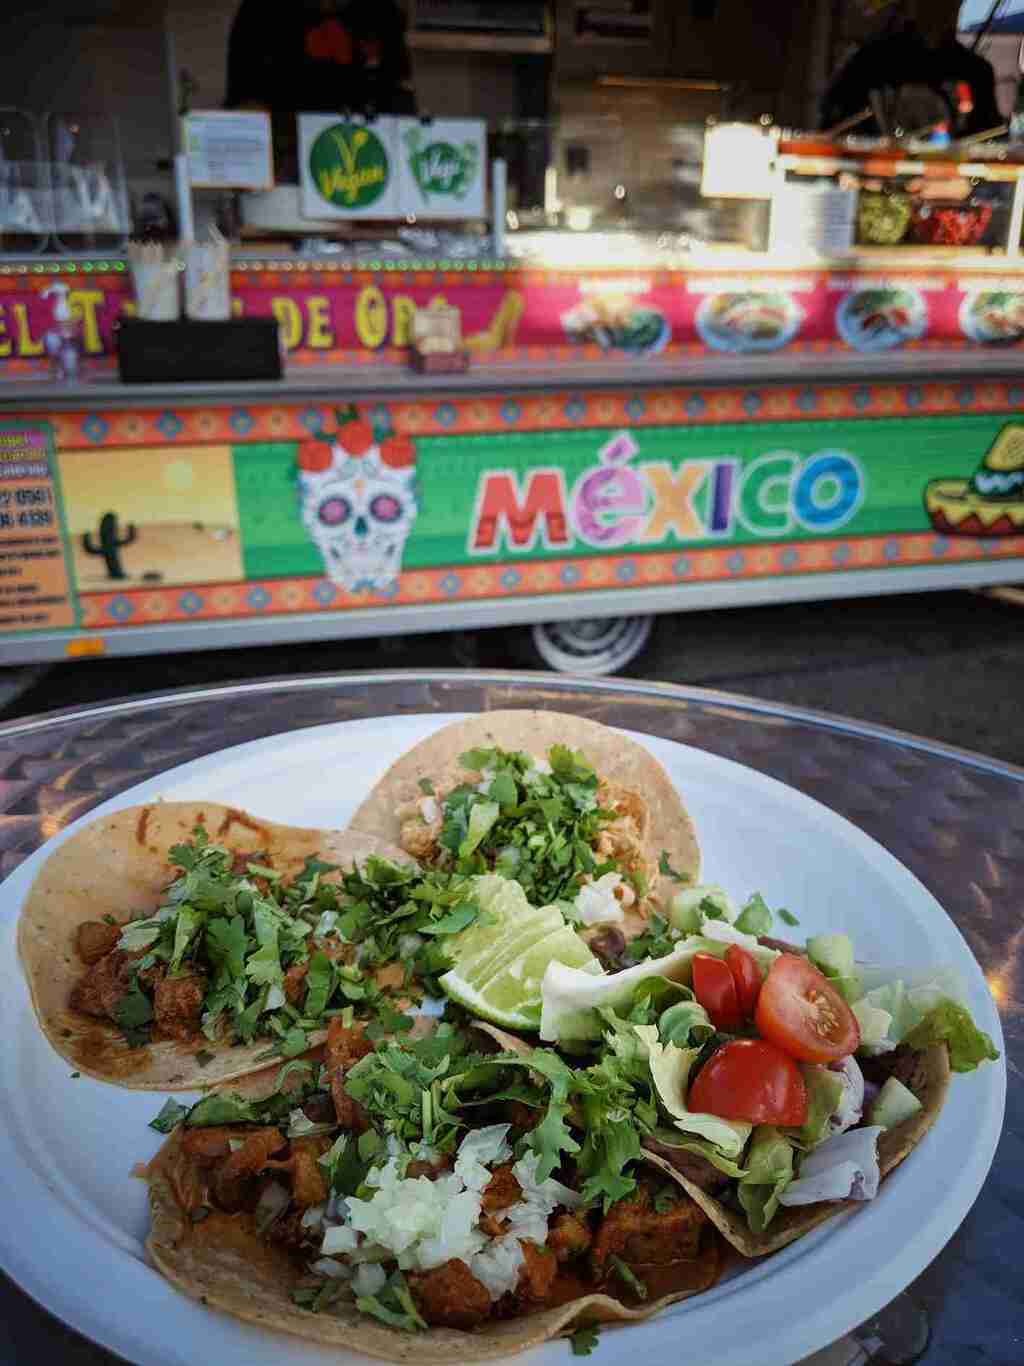 Tacos and Mexican cuisine at Zurich Street Food festival